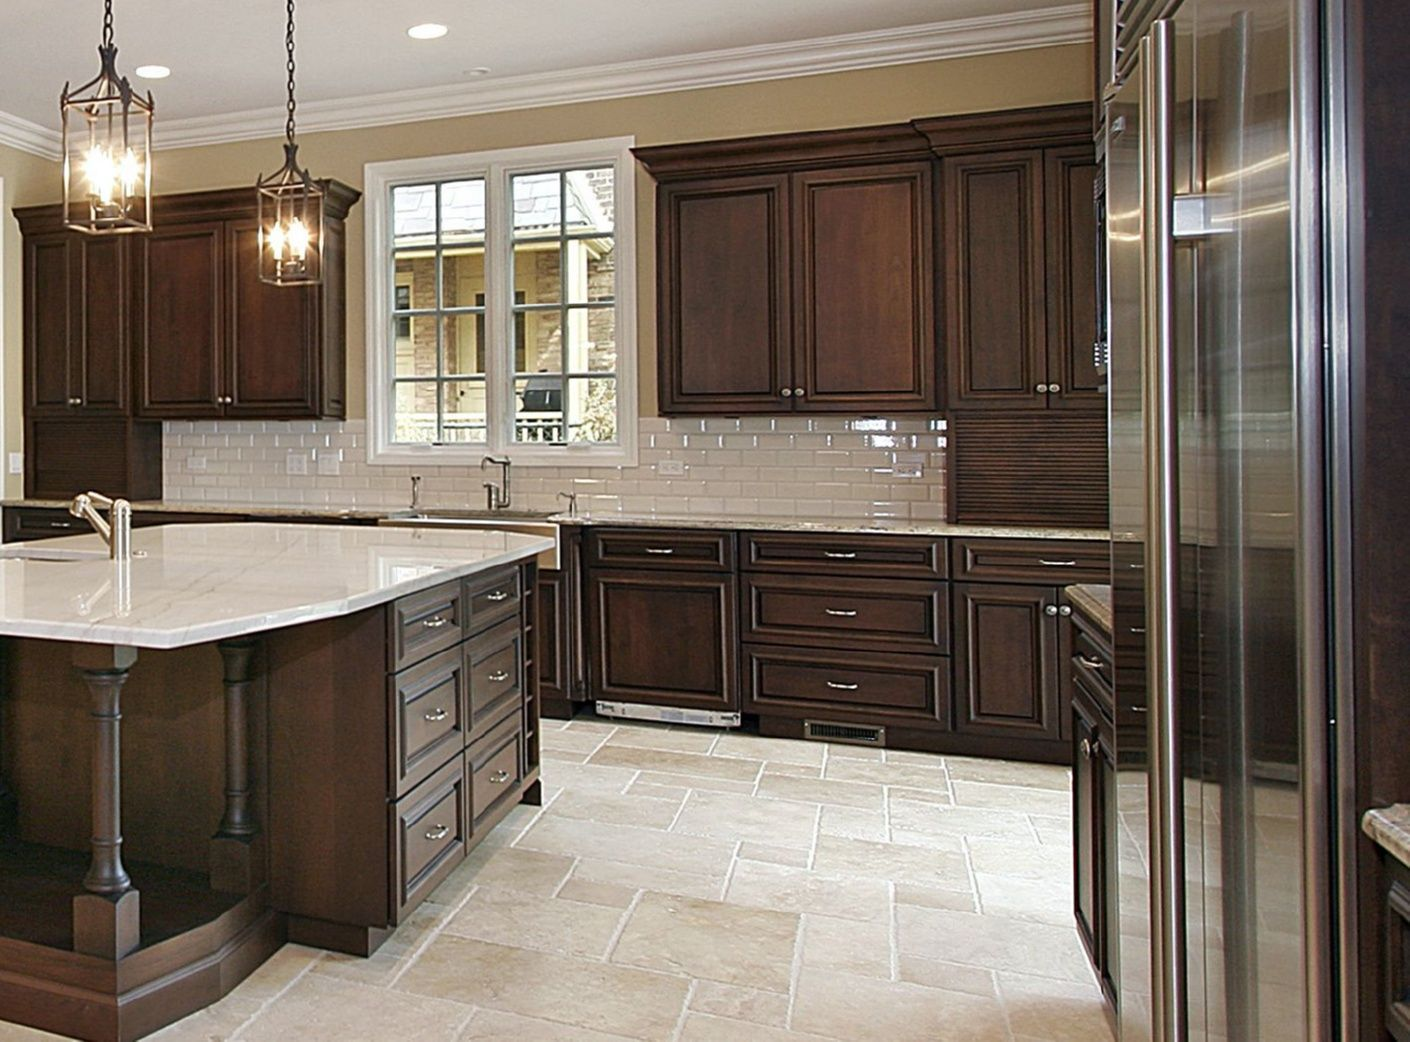 Kitchen Cabinets Direct Cherry Cabinets With Travertine Tile Floors Cabine Dark Brown Kitchen Cabinets Brown Kitchen Cabinets Colorful Kitchen Backsplash